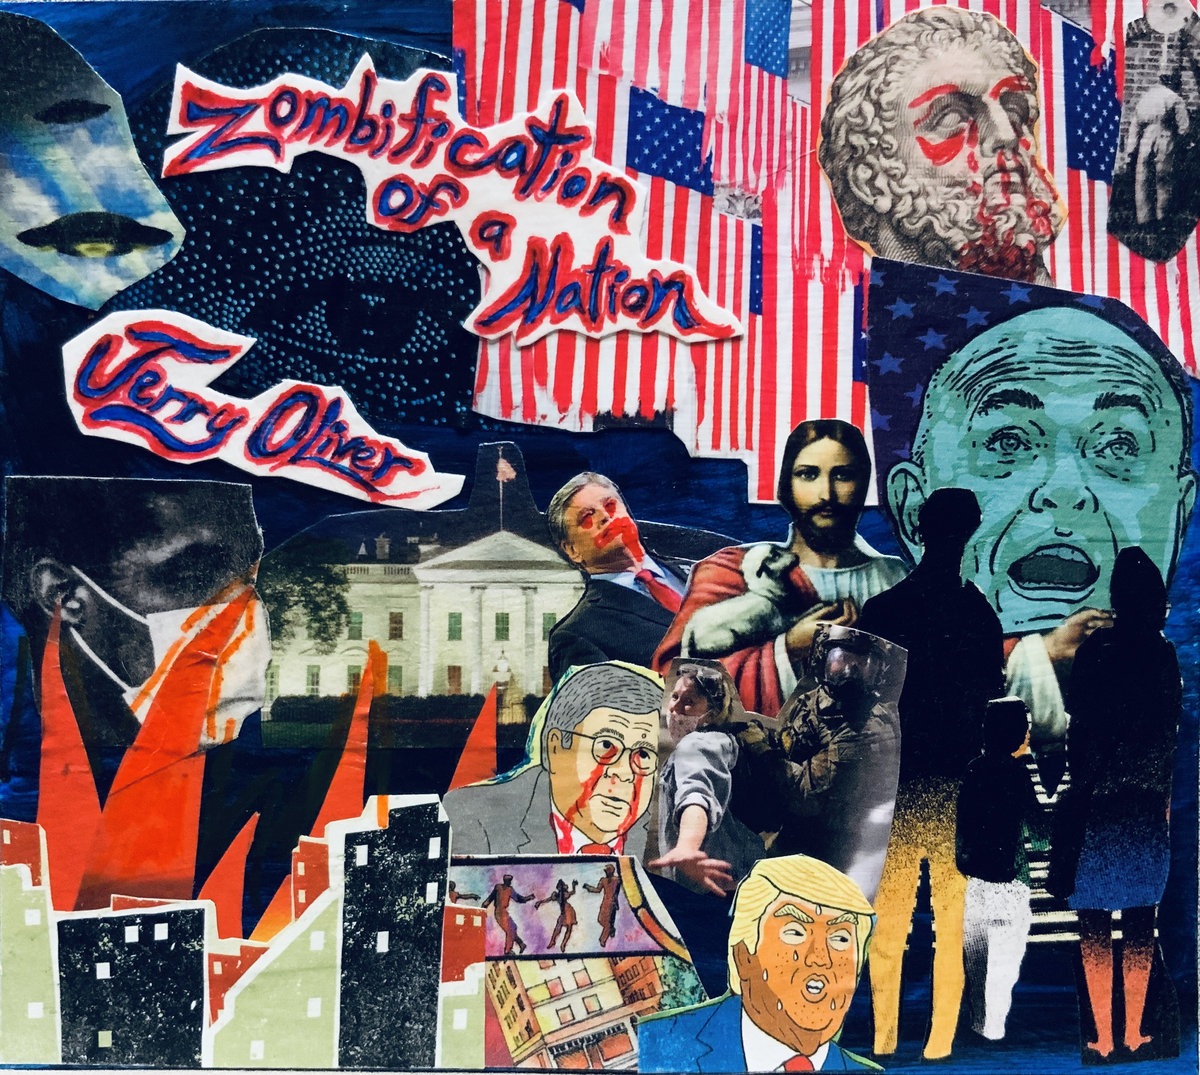 Zombification Of A Nation by Jerry Oliver